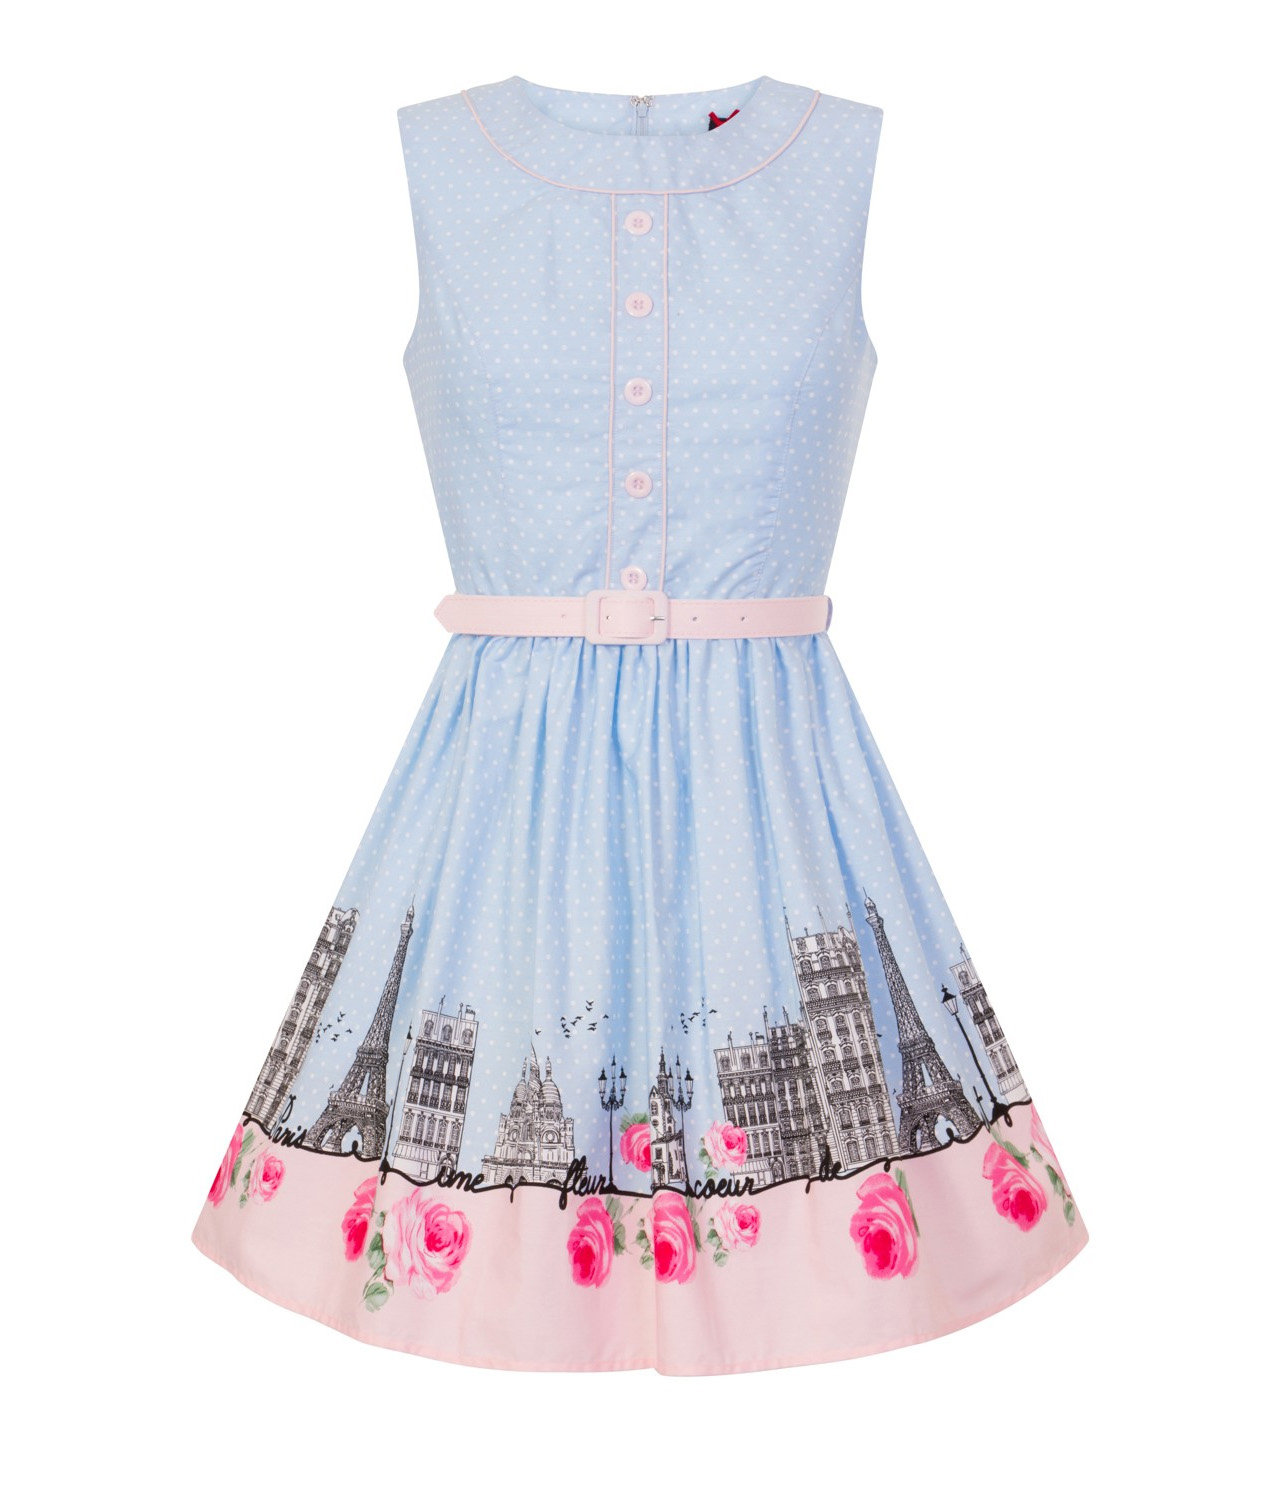 Hell-Bunny-50s-Vintage-Blue-Polka-Dot-PANAME-Mini-Dress-Paris-All-Sizes thumbnail 29